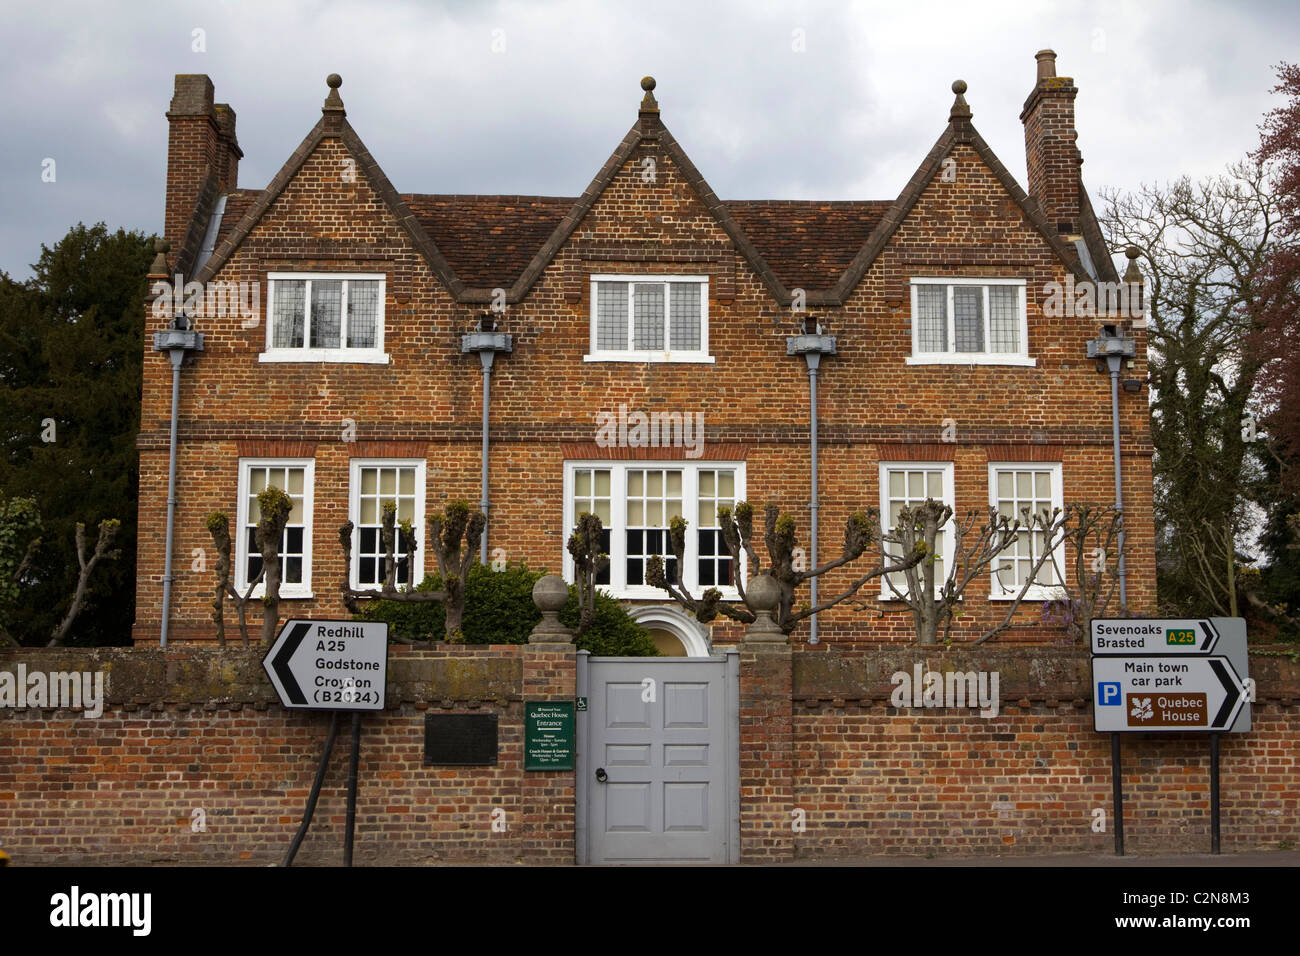 Quebec House is the birthplace of General James Wolfe on what is now known as Quebec Square in Westerham, Kent. - Stock Image